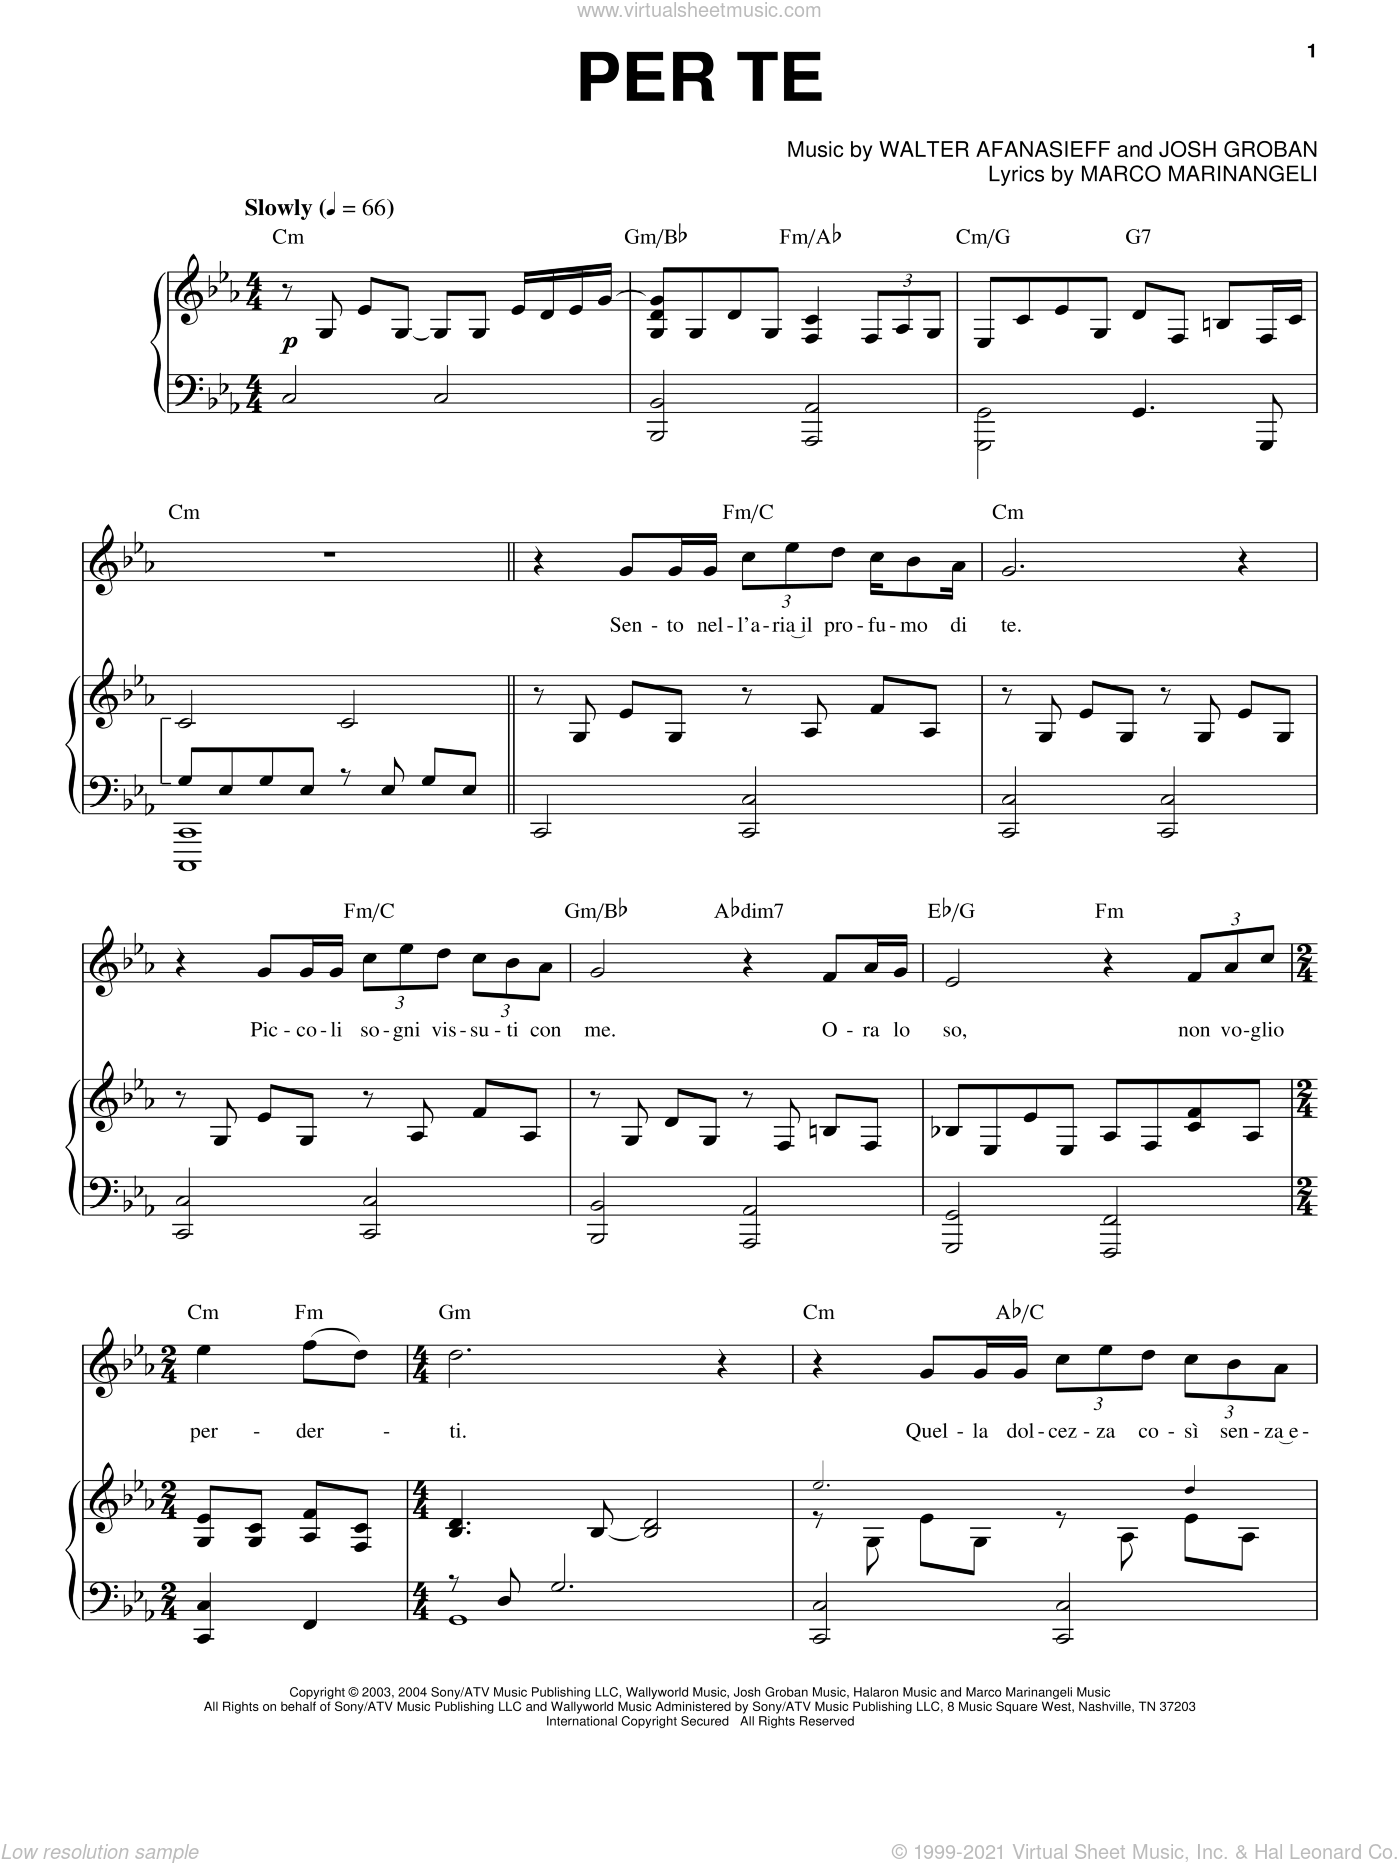 Per Te sheet music for voice and piano by Walter Afanasieff